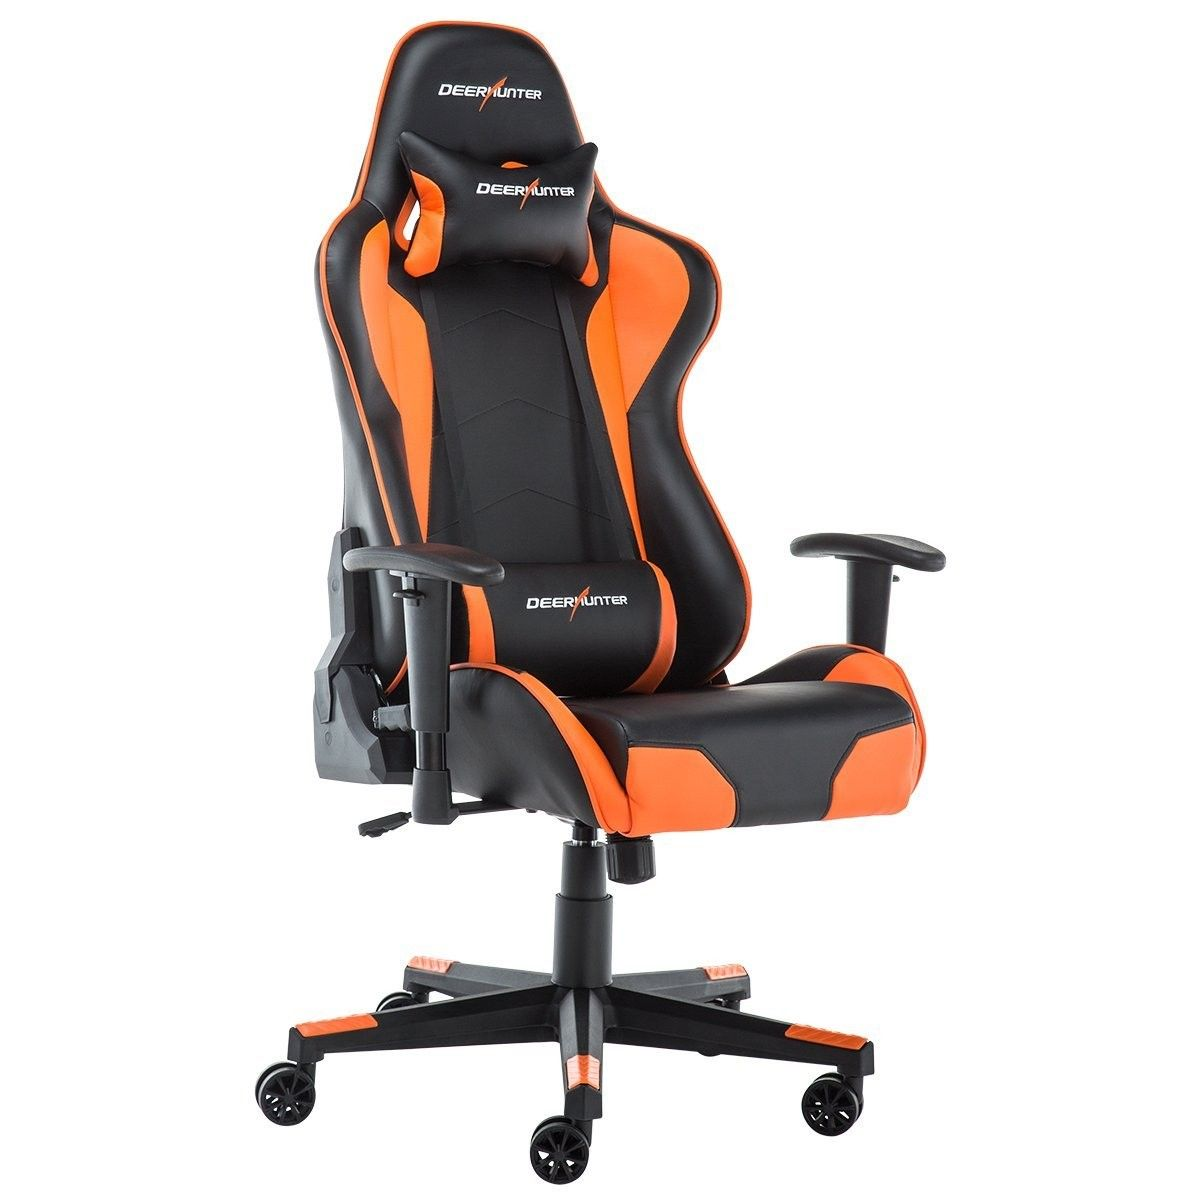 Pin By Raul Rodriguez On Dragonball Z Man Cave Racing Chair Leather Office Chair Adjustable Computer Desk